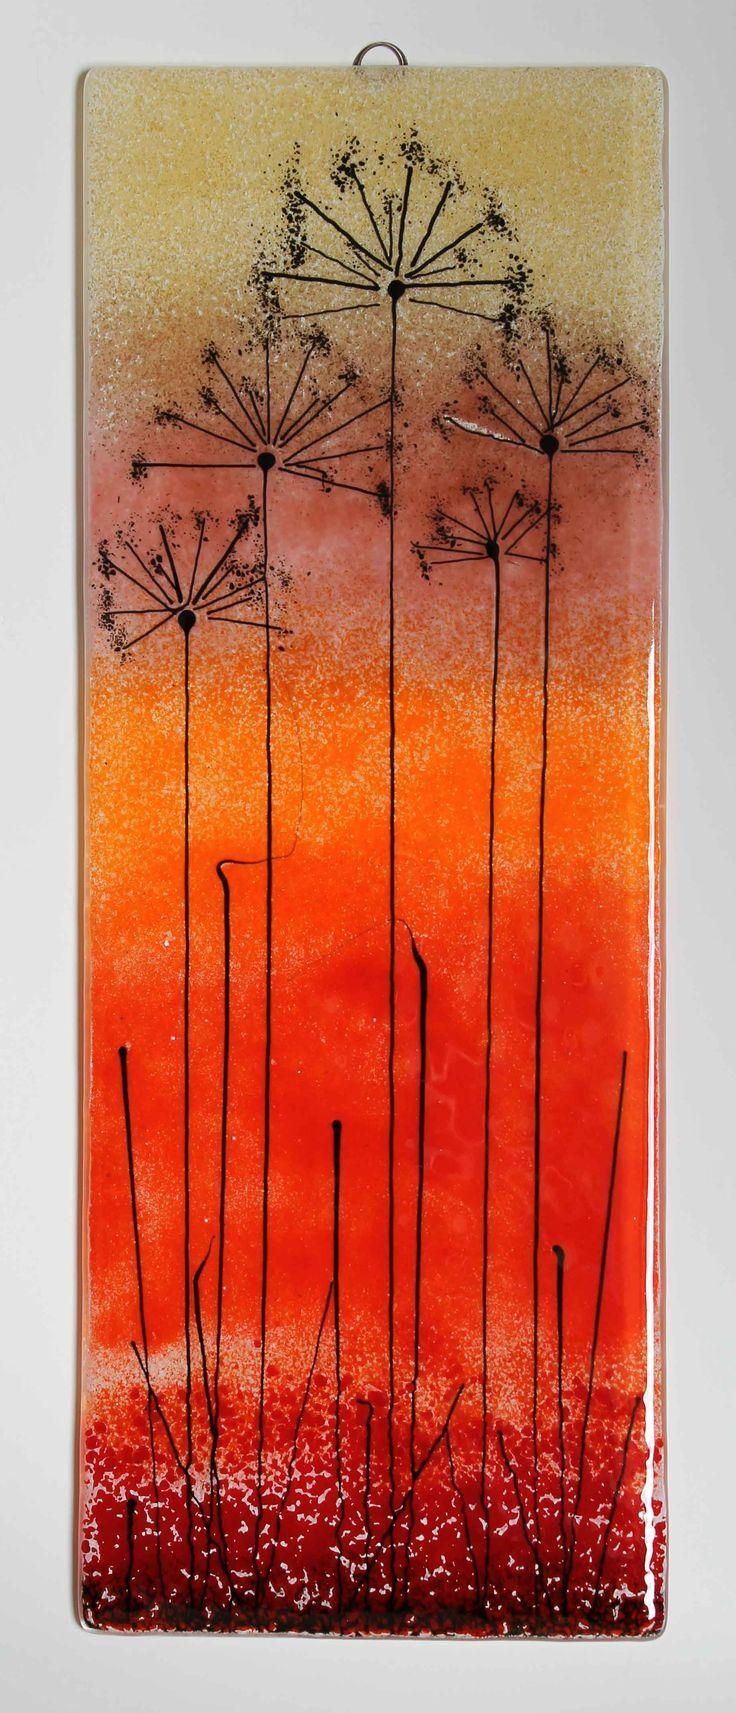 1909 Best Fused Glass - Artsy Fartsy Images On Pinterest | Stained regarding Fused Glass Wall Art Panels